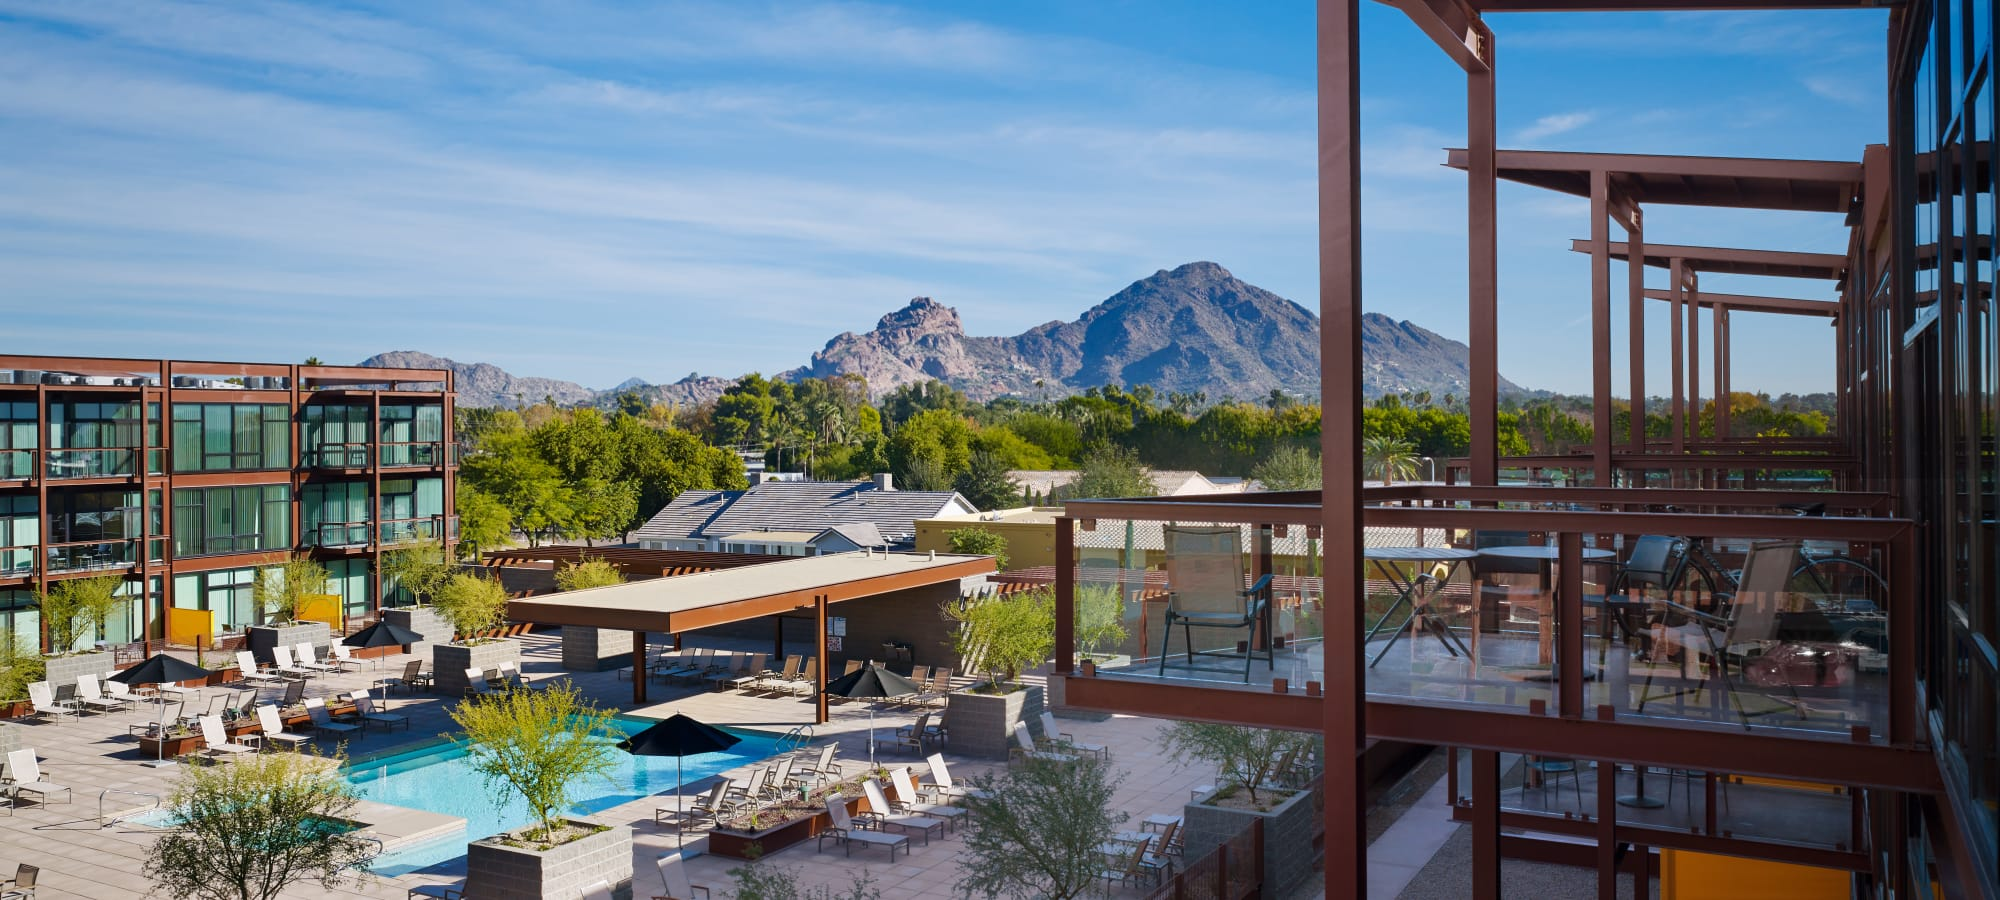 Beautiful mountain view from balcony of apartment home at Domus in Phoenix, Arizona